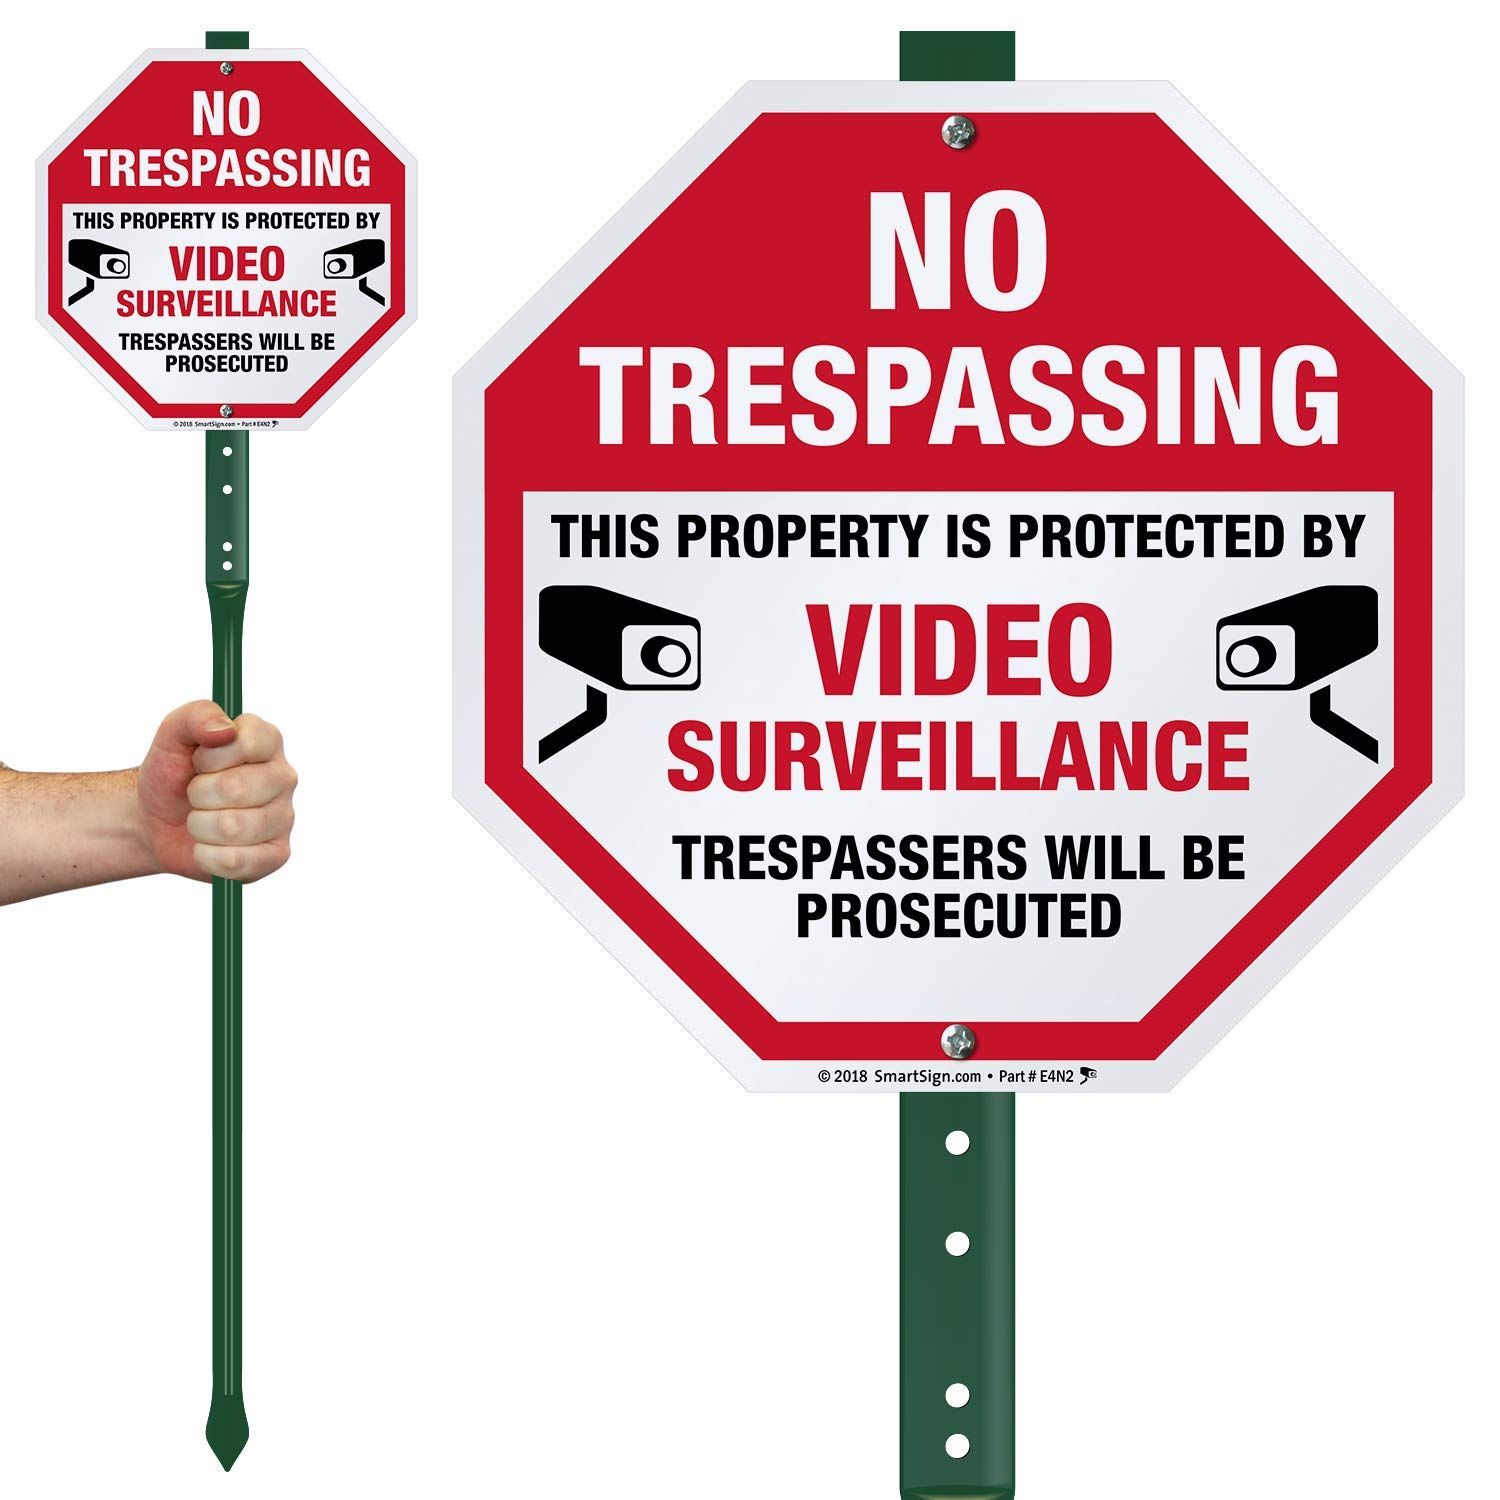 SmartSign No Trespassing Sign with Stake 3' Tall, This Property is Protected by Video Surveillance, Trespassers Will Be Prosecuted Sign for Yard/Lawn/Outdoors | 10 Inch Octagon Aluminum Metal Sign